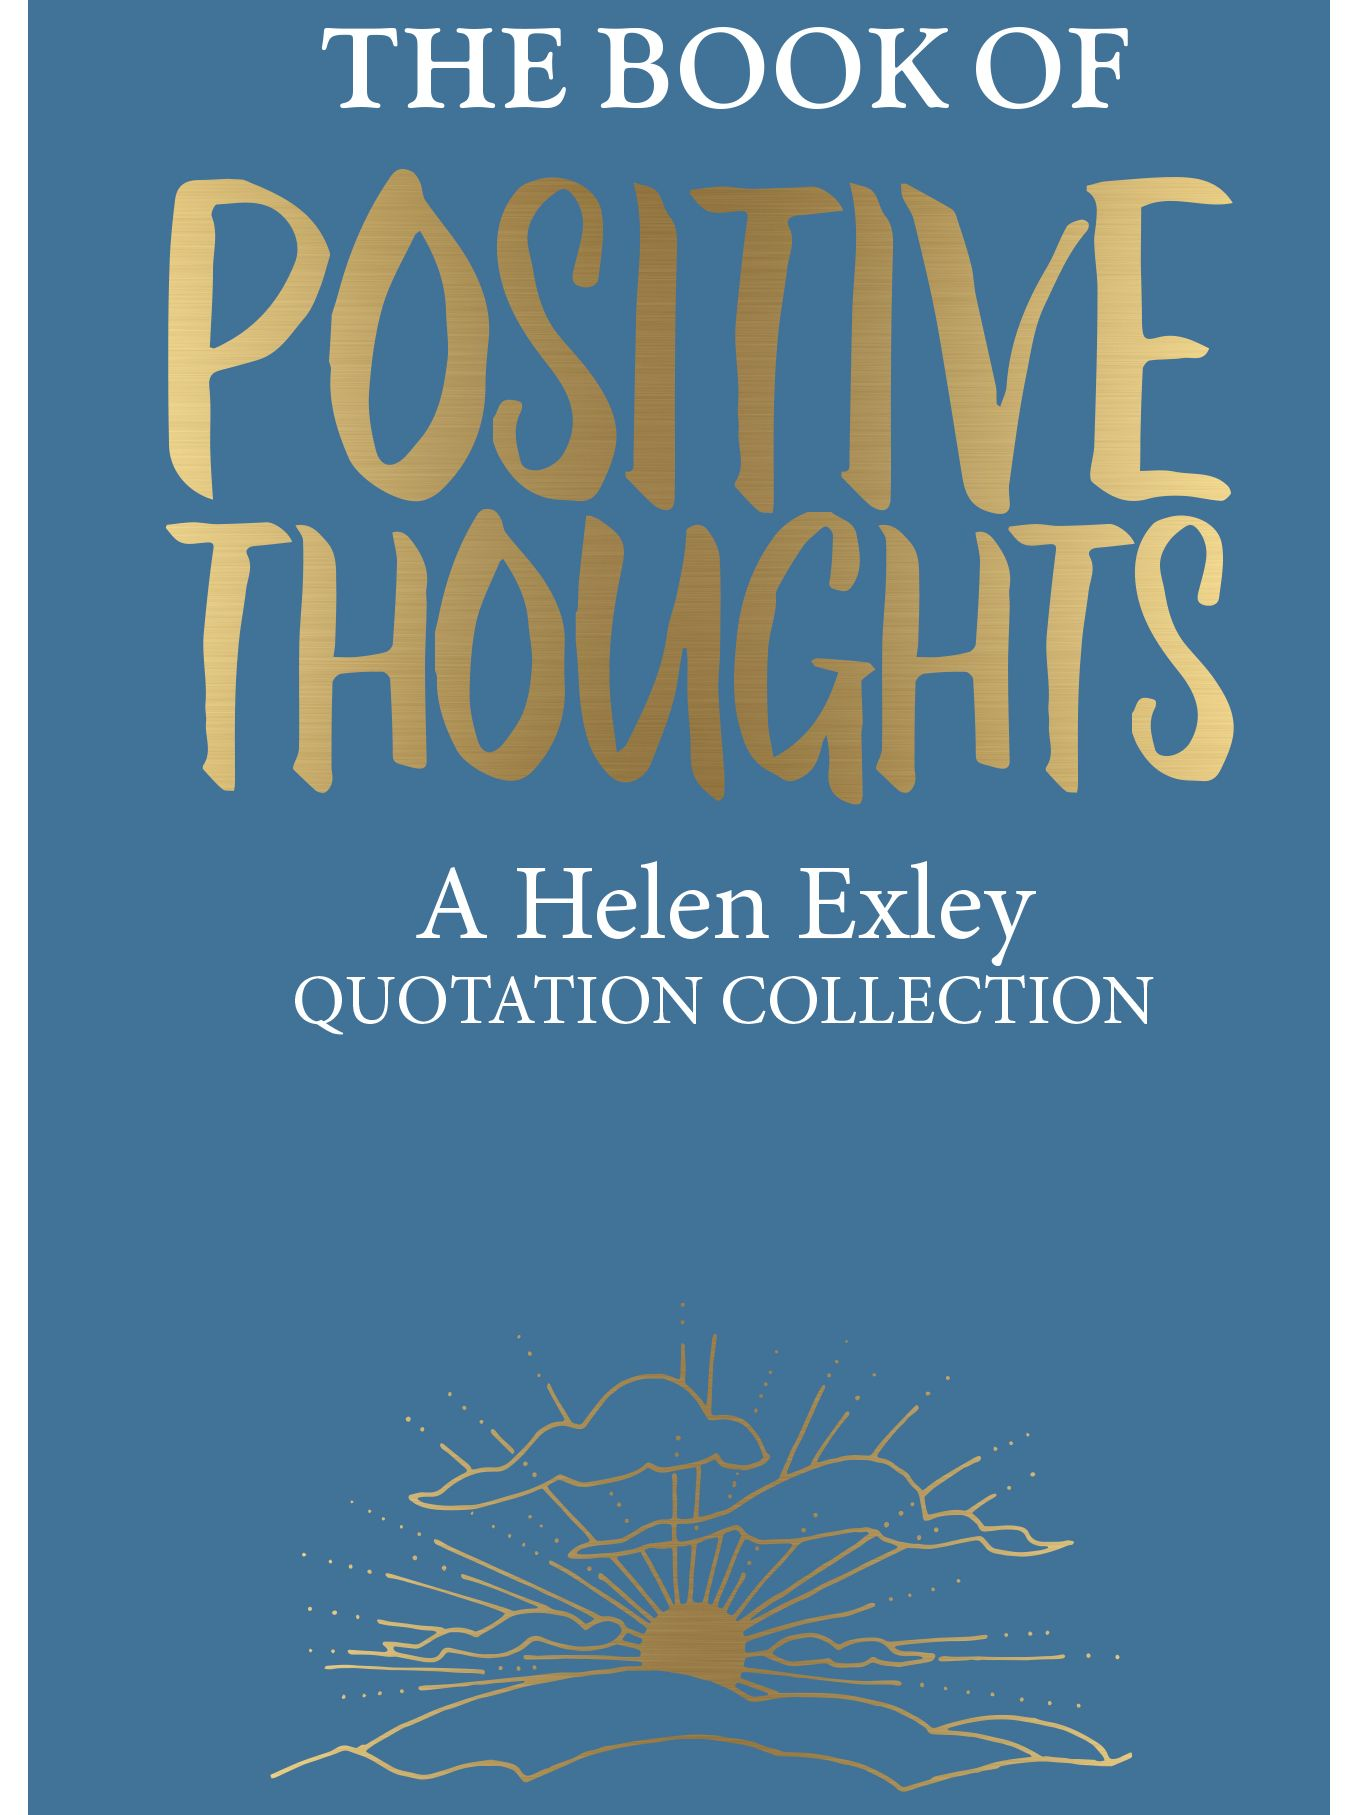 Allsorted The Book Of Positive Thoughts by Helen Exley